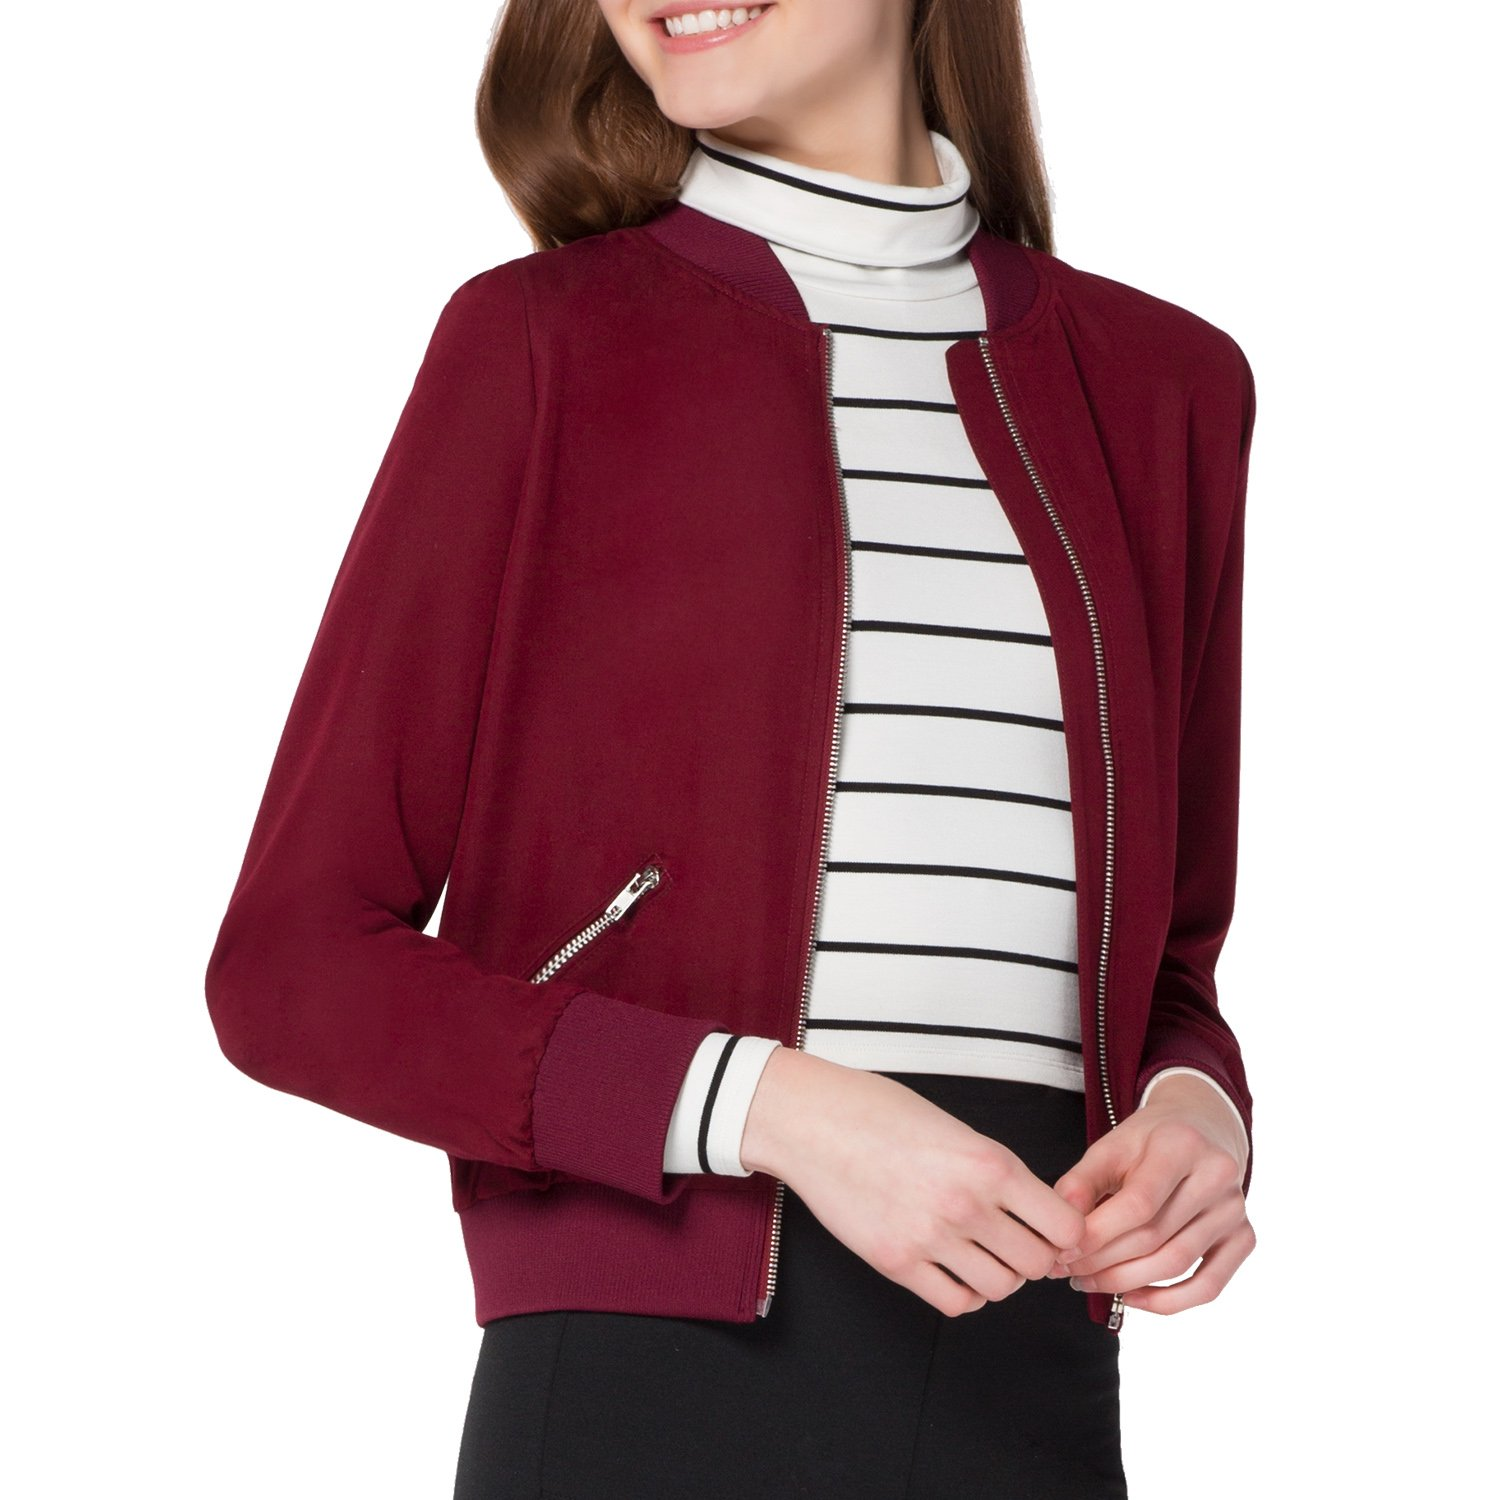 Kat & Emma Classic Style Boxy Womens Bomber Jacket with Two Front Pockets (Cranberry, Small)